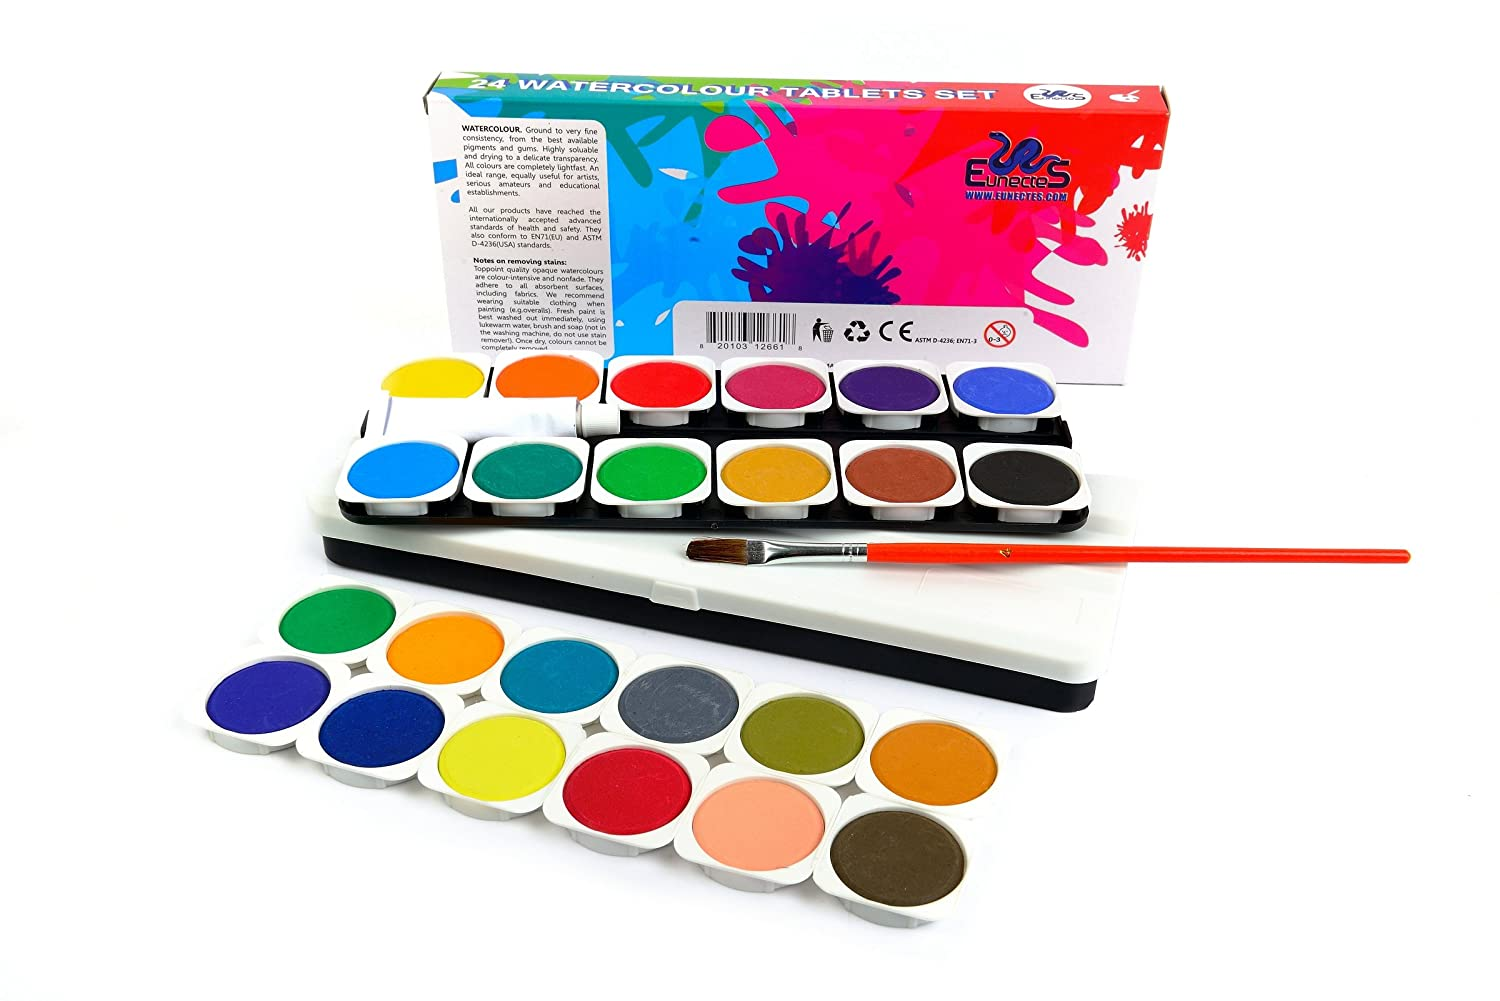 Watercolor artist magazine customer service - Amazon Com Watercolor Paint Set Best Artist Kit Of 24 Color Paint For Kids Adults Beginners And Professionals Extra Light Travel Case Brush In The